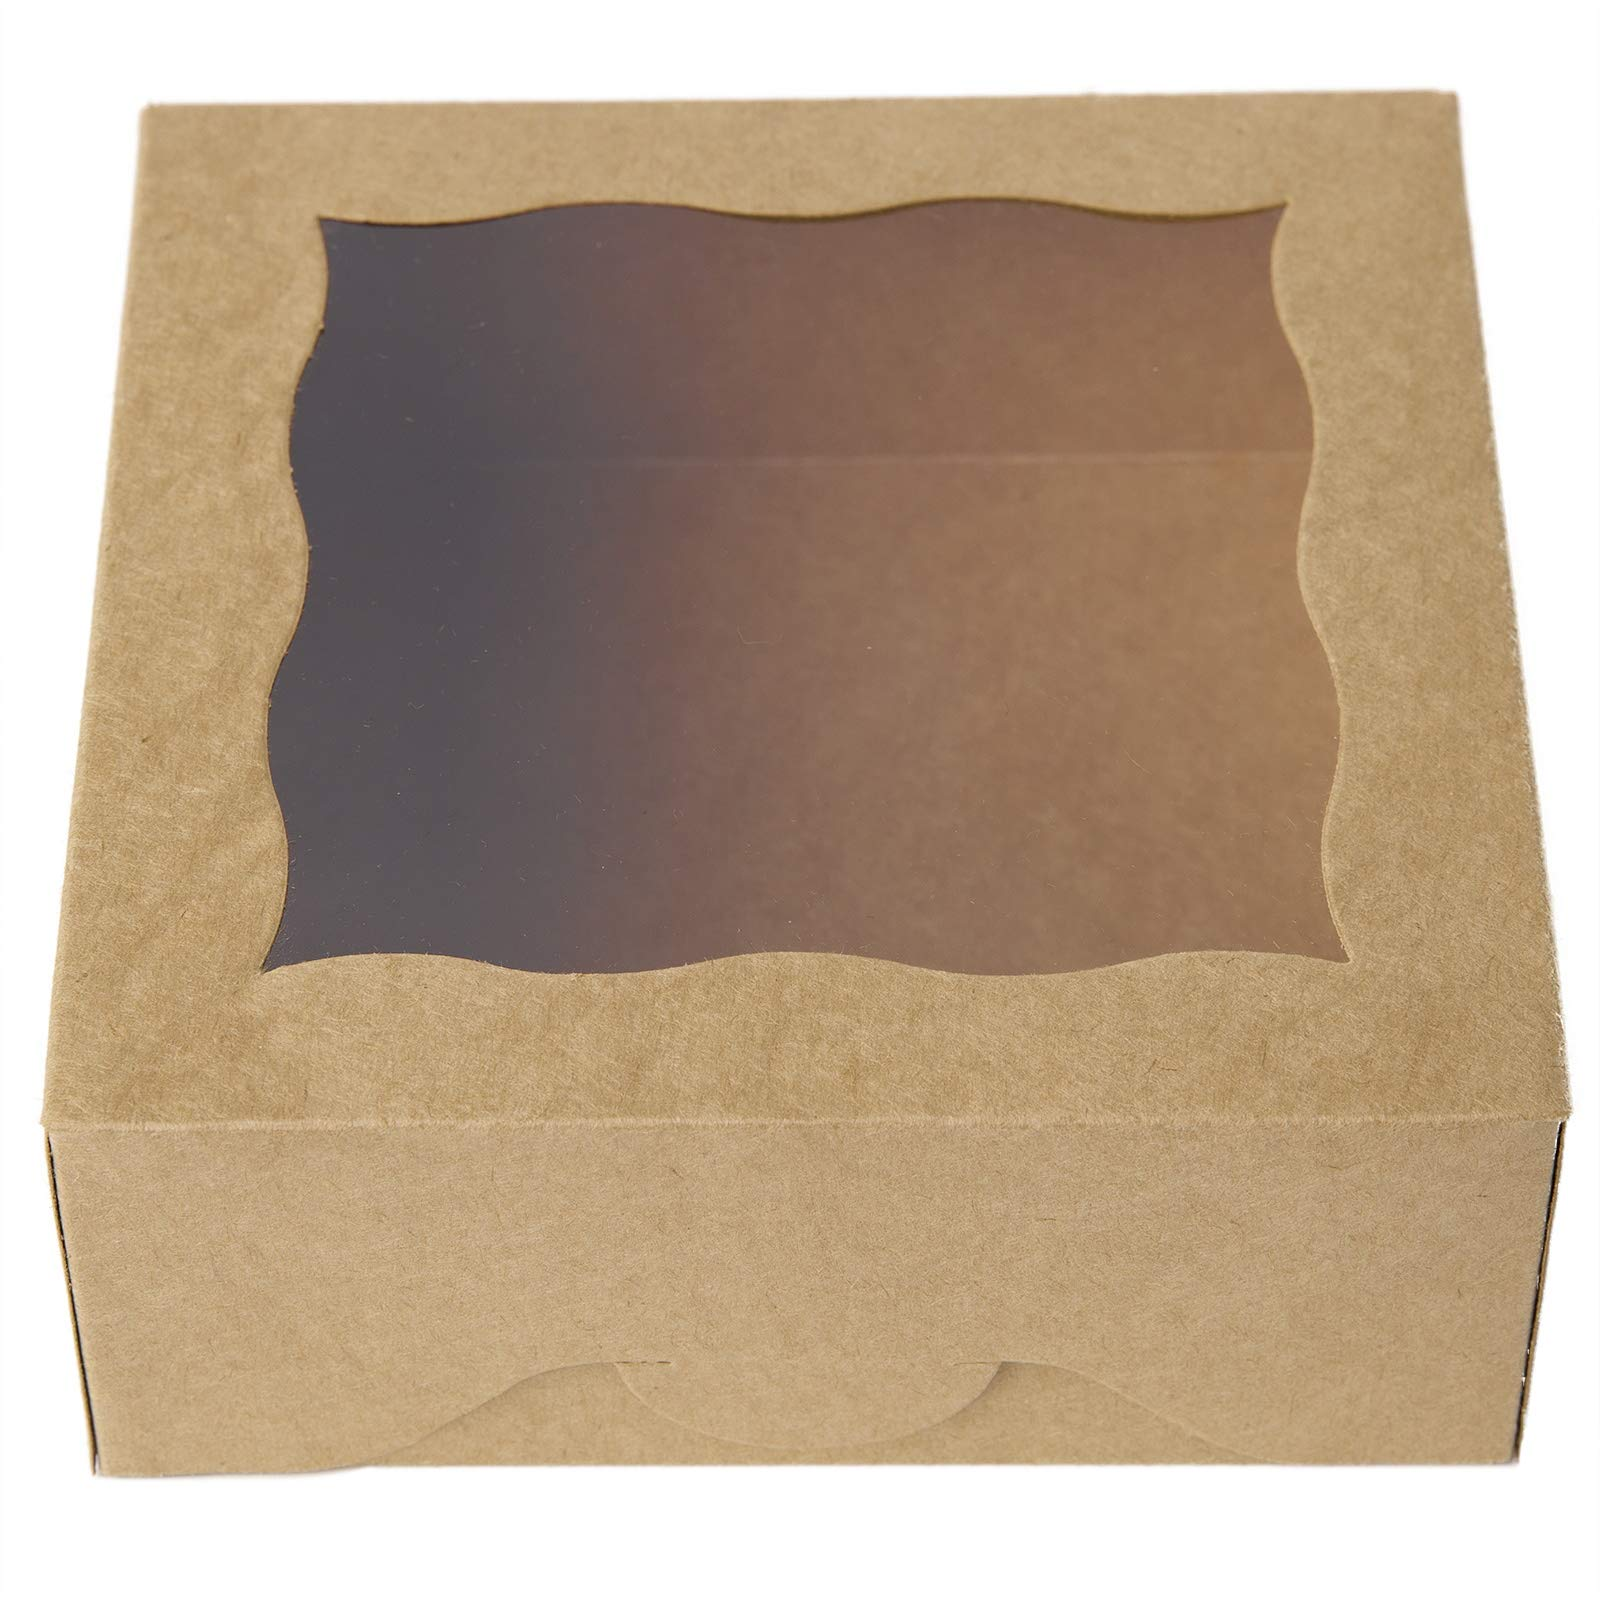 ONE MORE 6''Brown Bakery Boxes with pvc Window for Pie and Cookies Boxes Small Natural Craft Paper Box 6x6x2.5inch,12 of Pack by ONE MORE